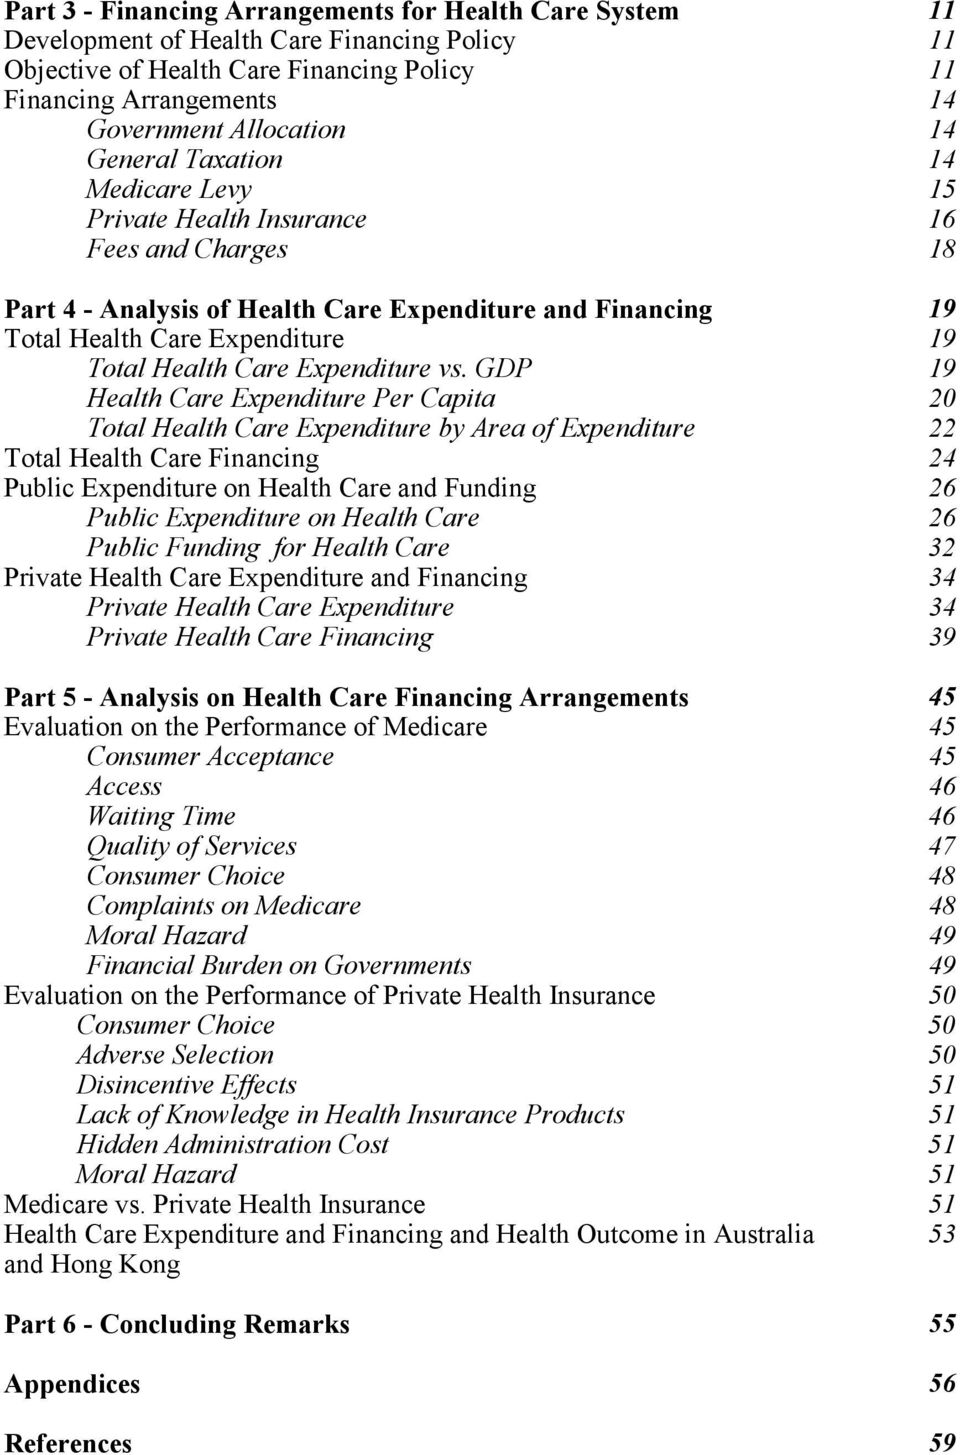 GDP 19 Health Care Expenditure Per Capita 20 Total Health Care Expenditure by Area of Expenditure 22 Total Health Care Financing 24 Public Expenditure on Health Care and Funding 26 Public Expenditure